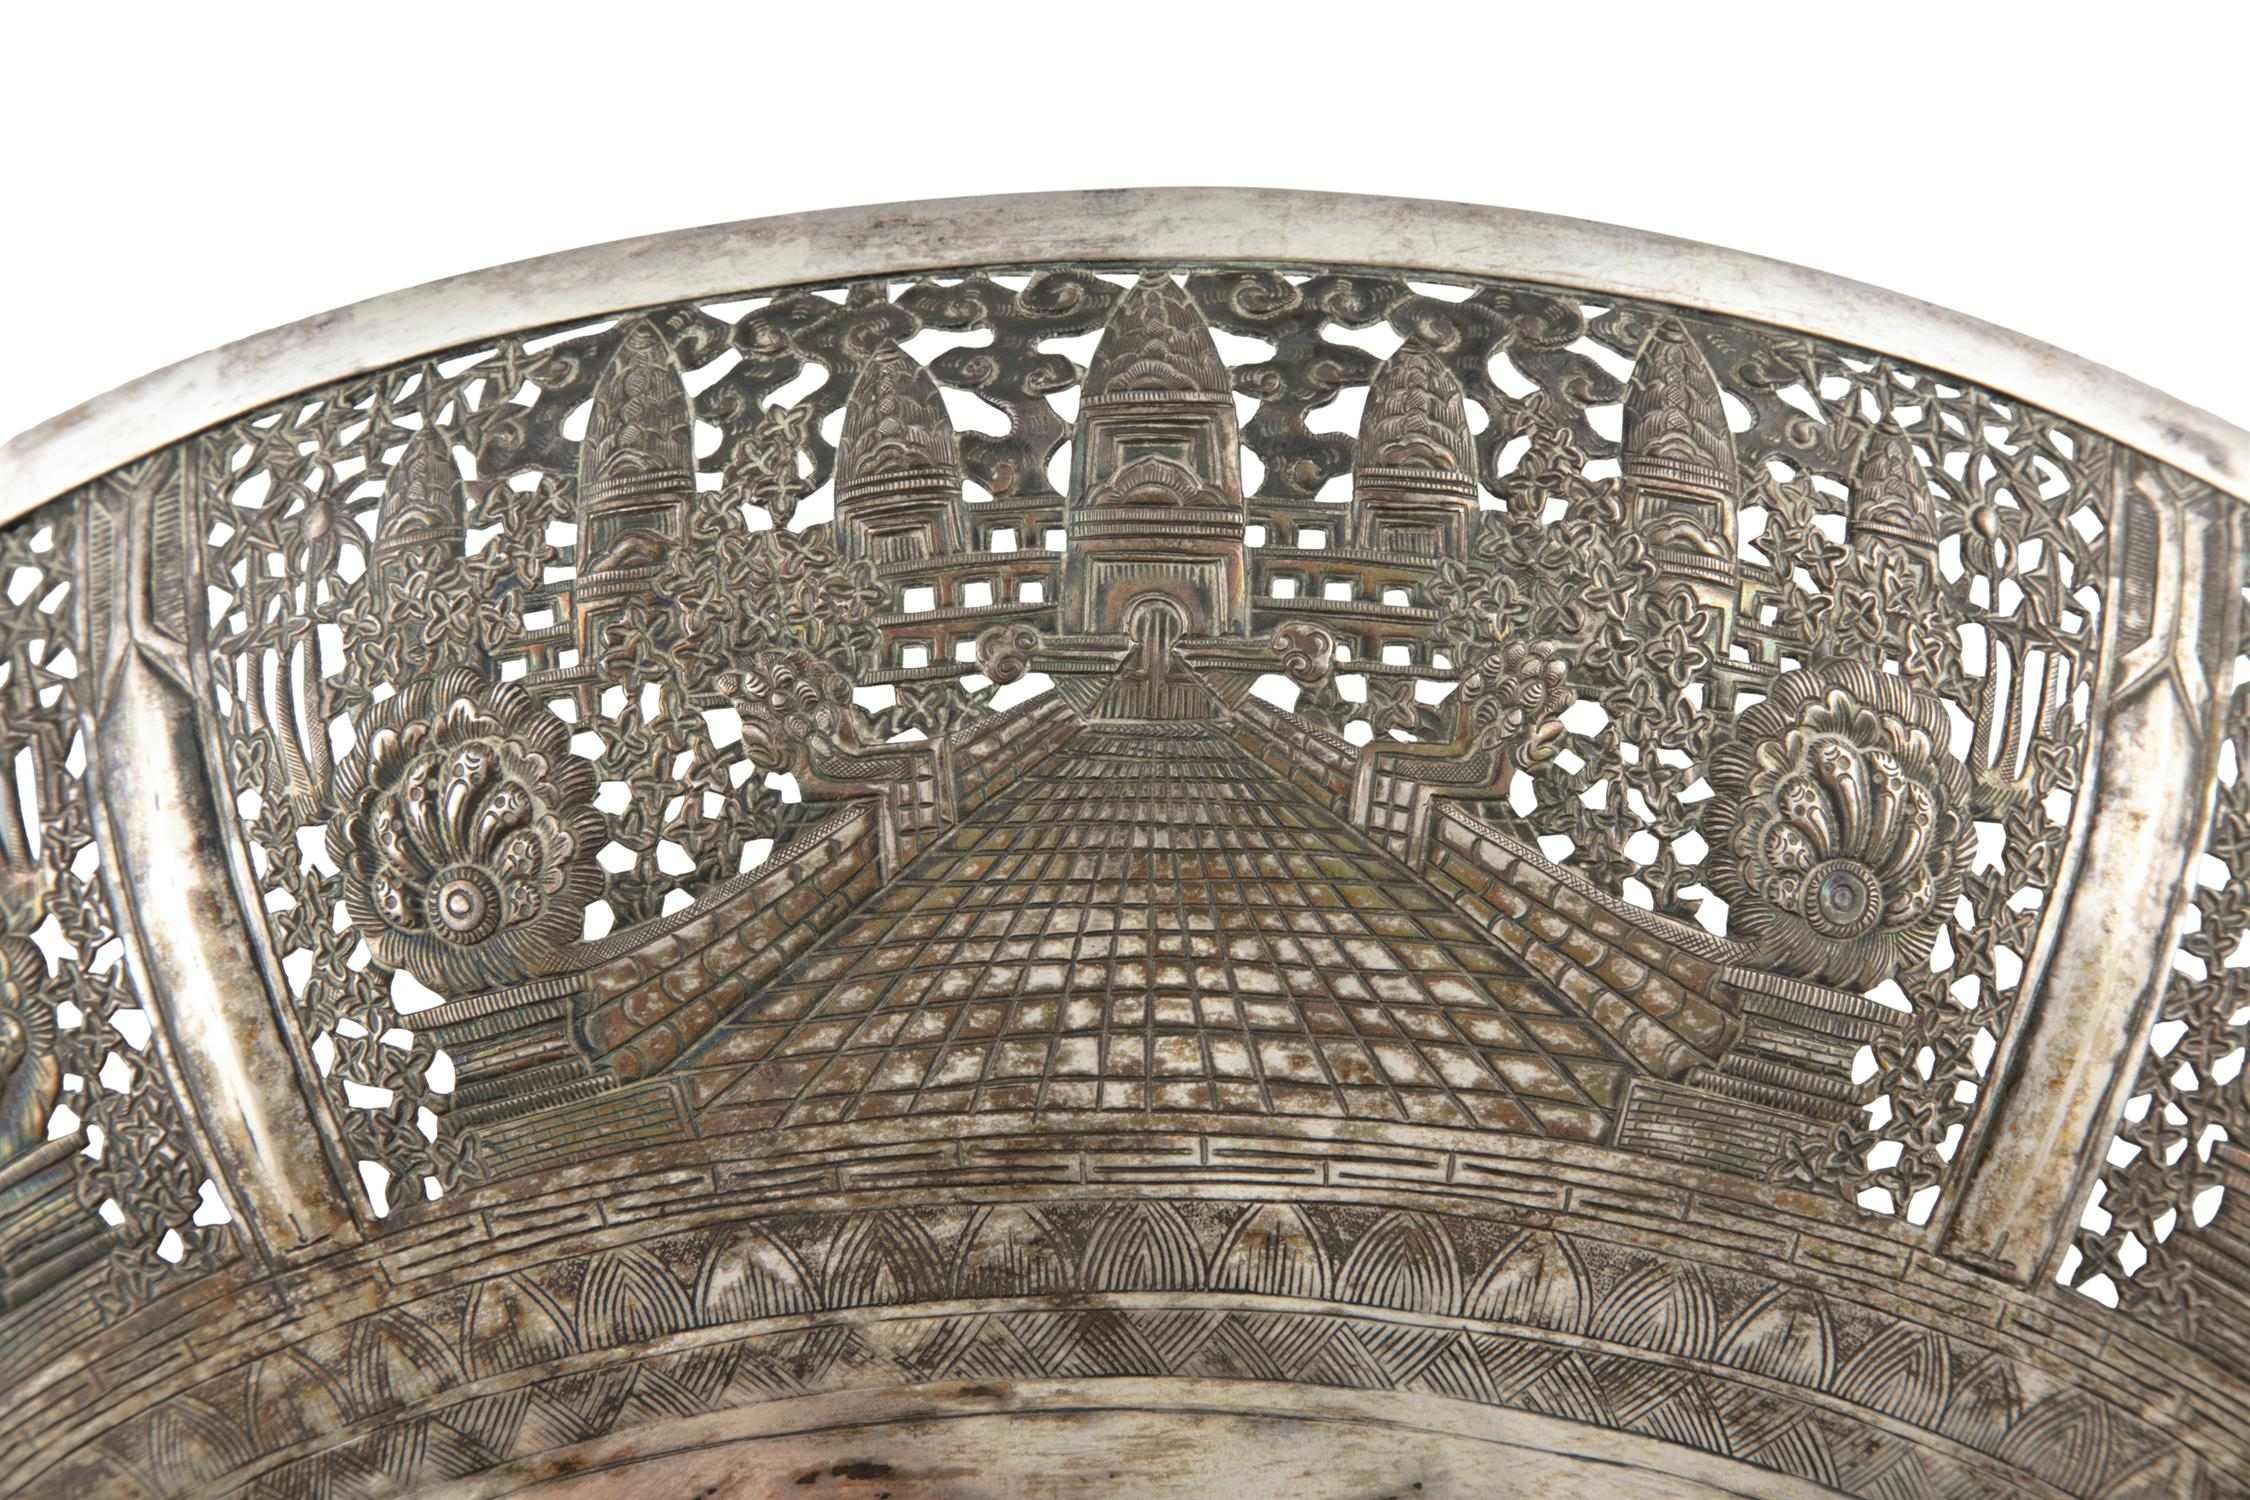 A LARGE RETICULATED 'ANGKOR VAT' SILVER BOWL Siam / Indochina, 20th century H: 10 cm - D: 28,5 cm - Image 4 of 4